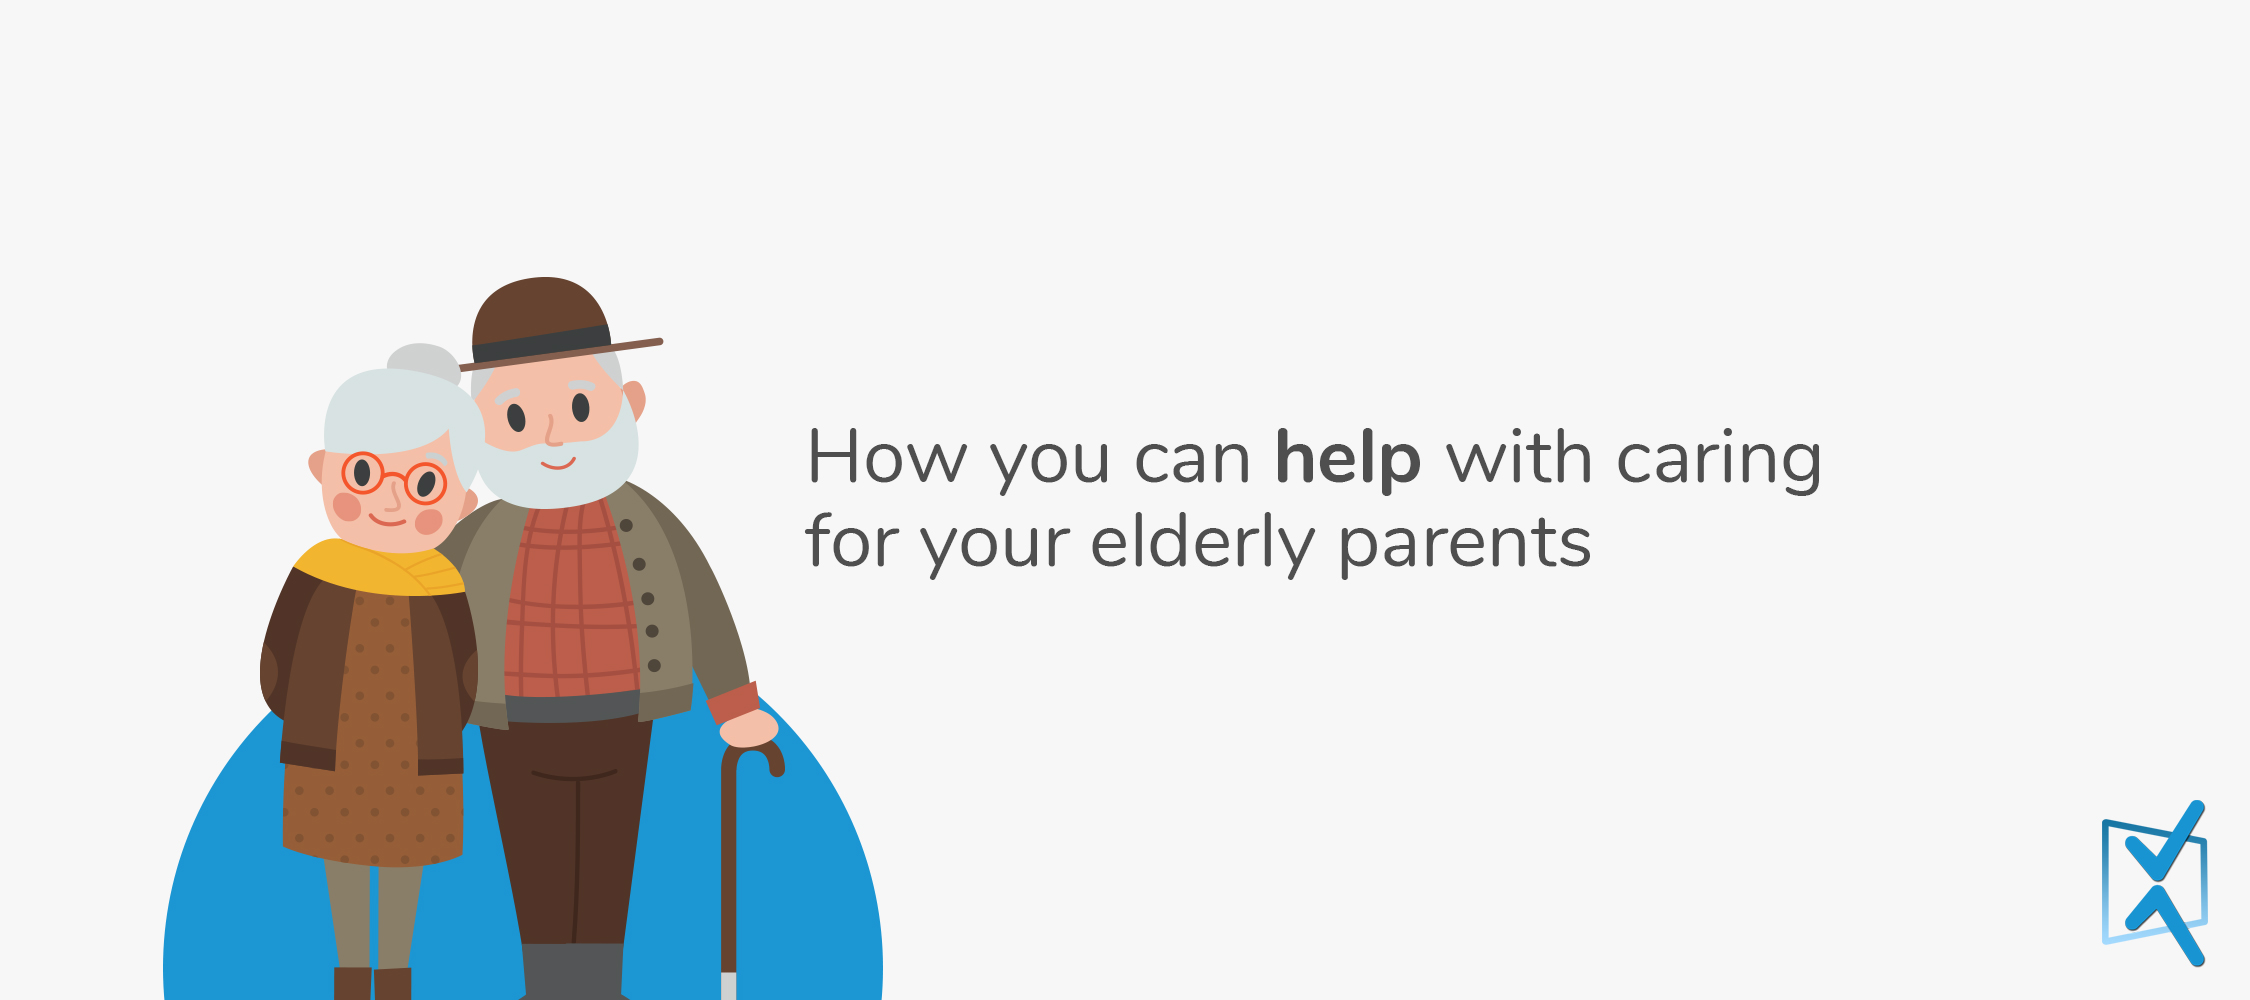 How you can help with caring for your elderly parents